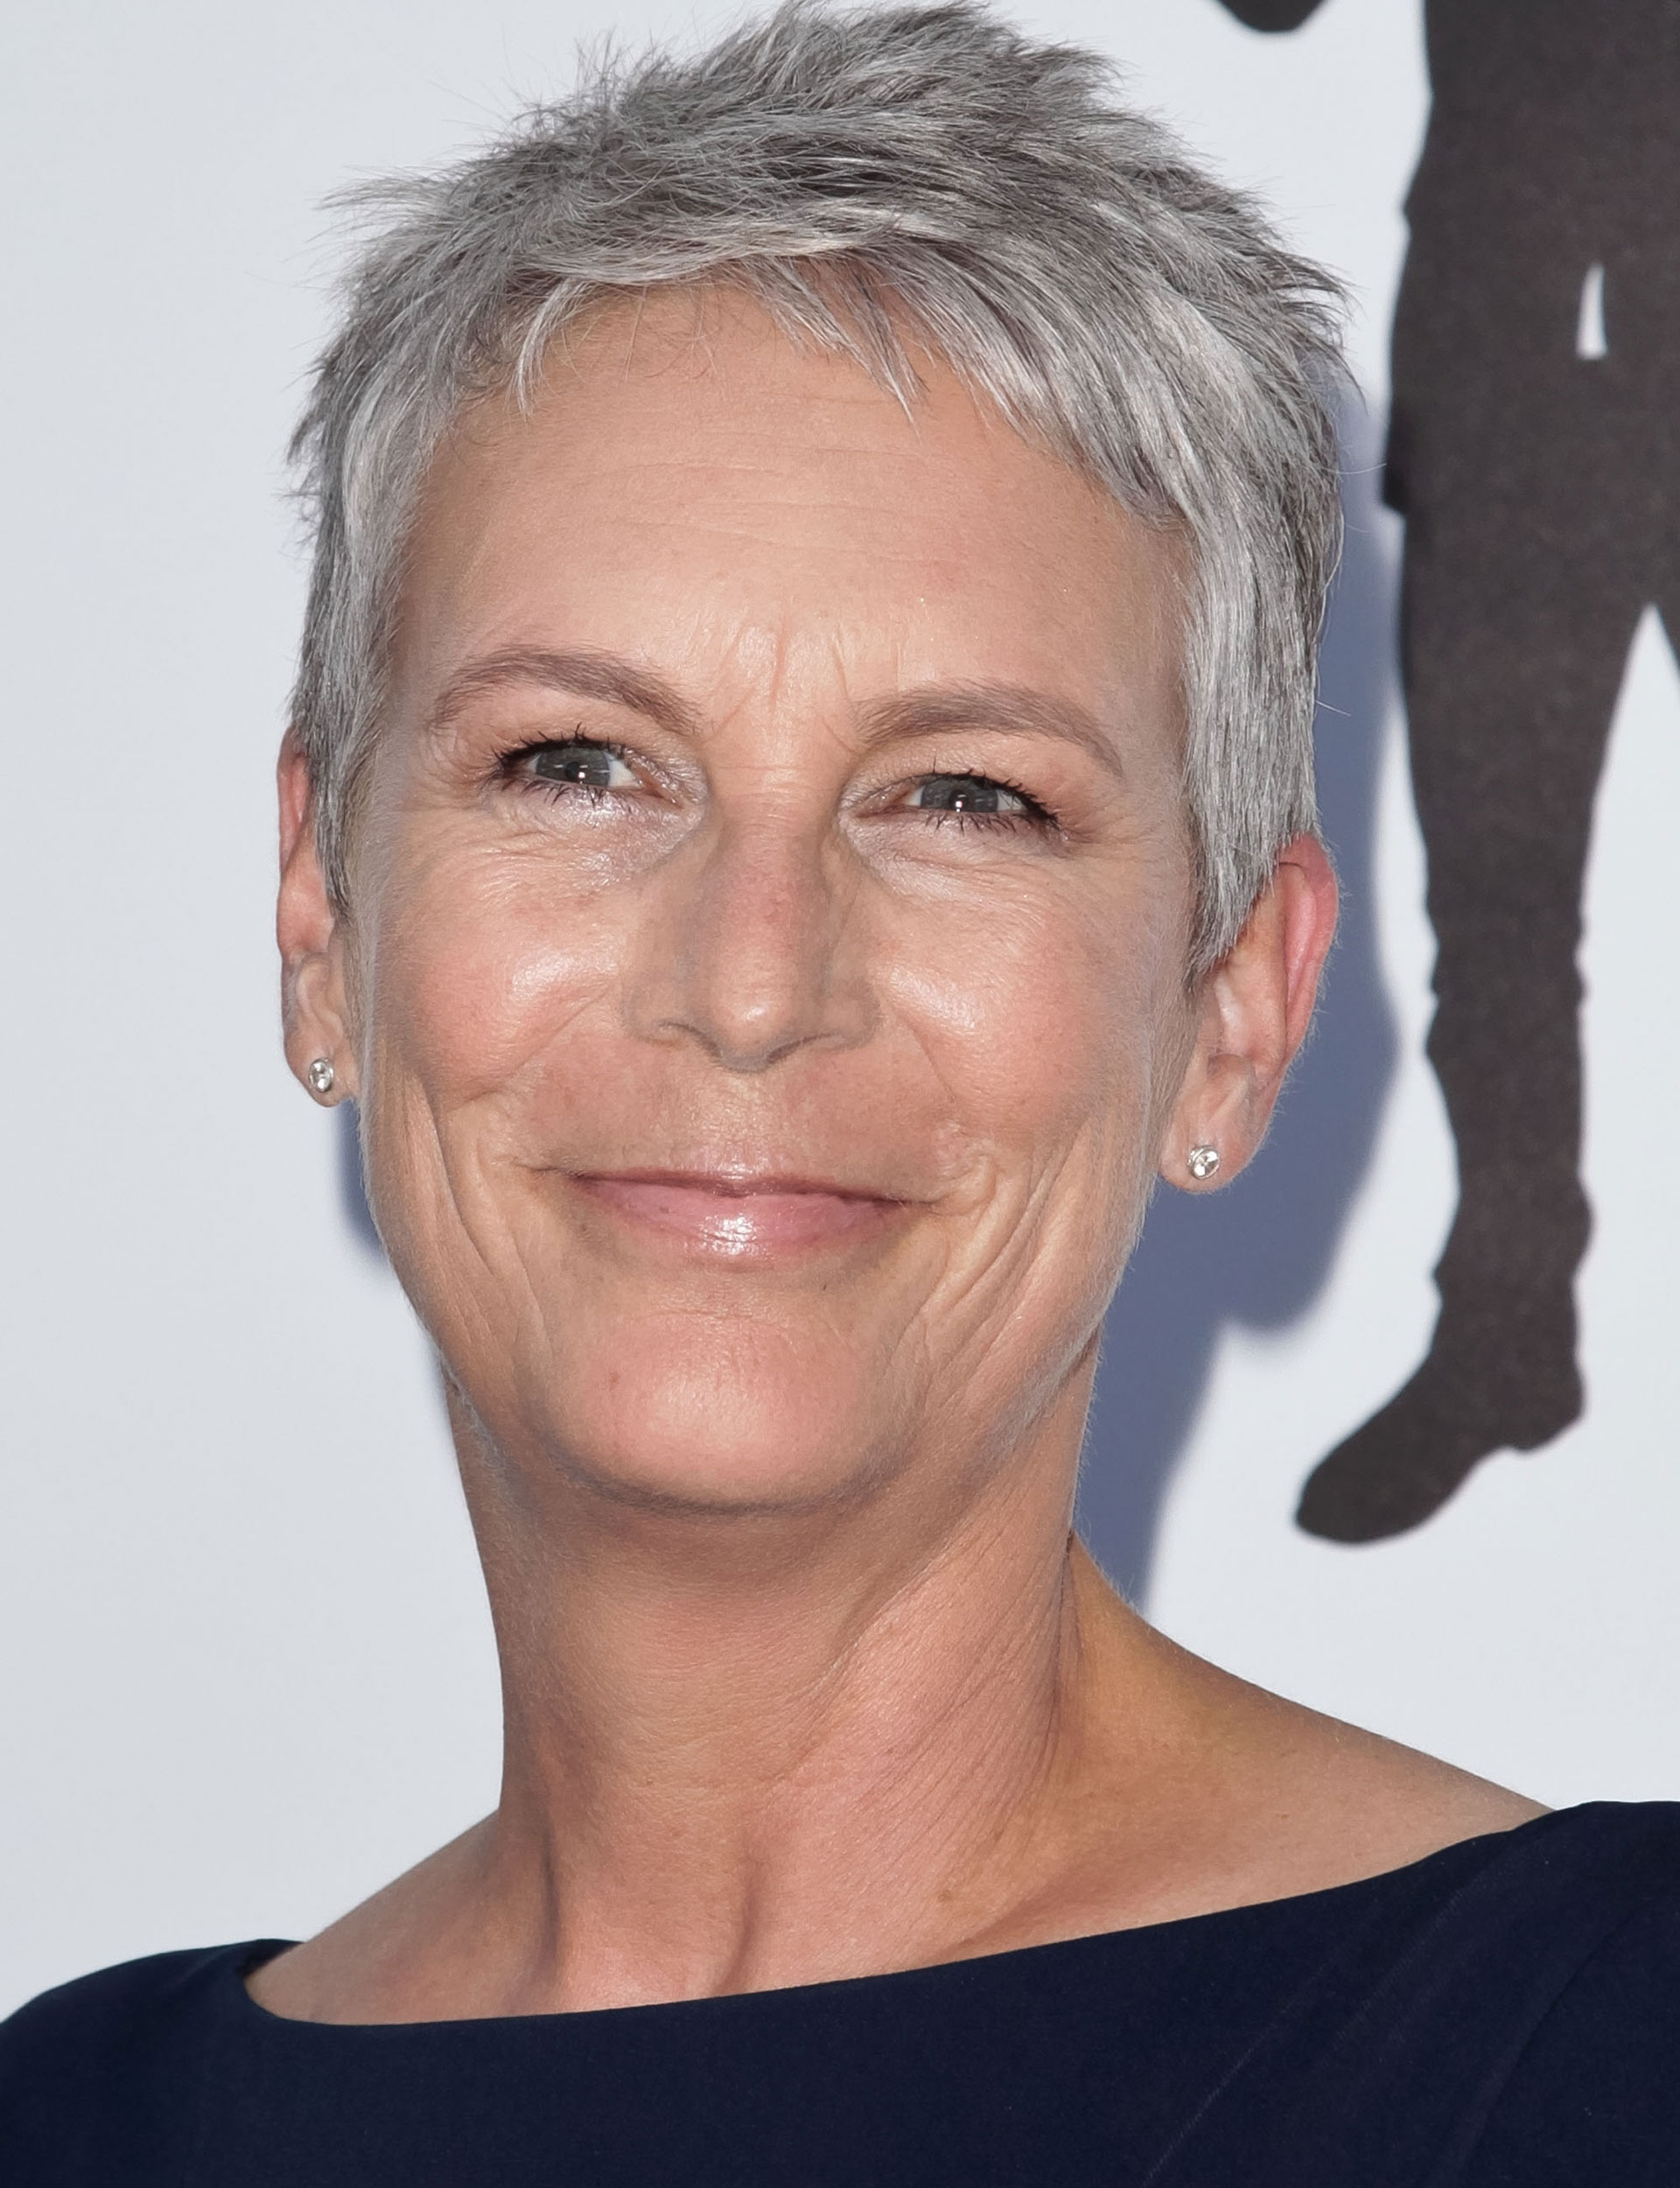 Famous women with gray hair